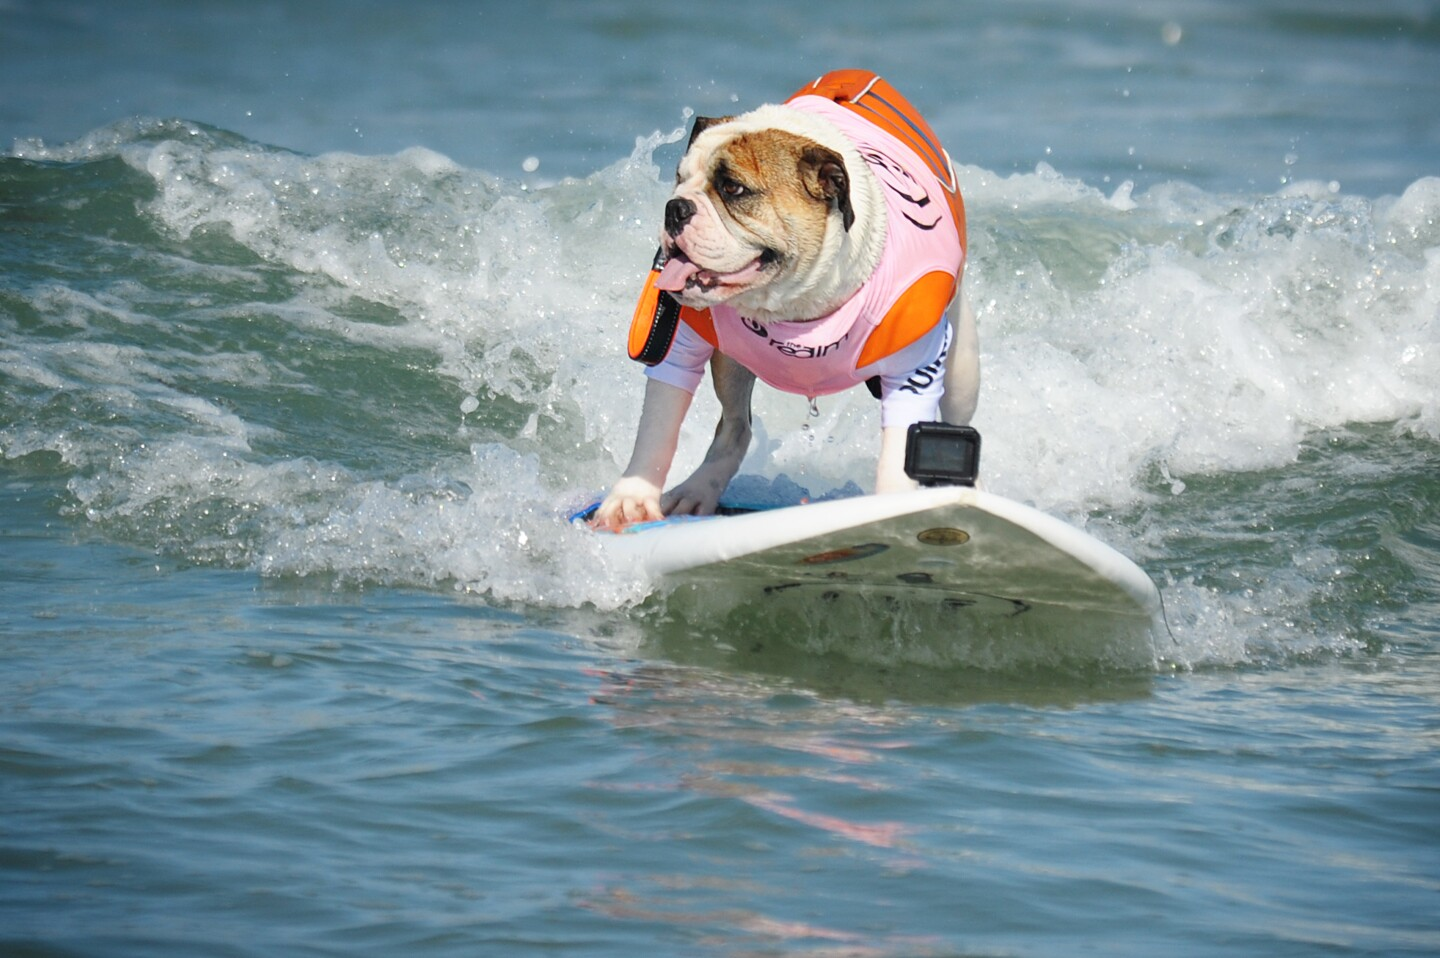 Fearless surFUR dogs competed in the 14th annual Imperial Beach Surf Dog Competition on Saturday, August 10, 2019.